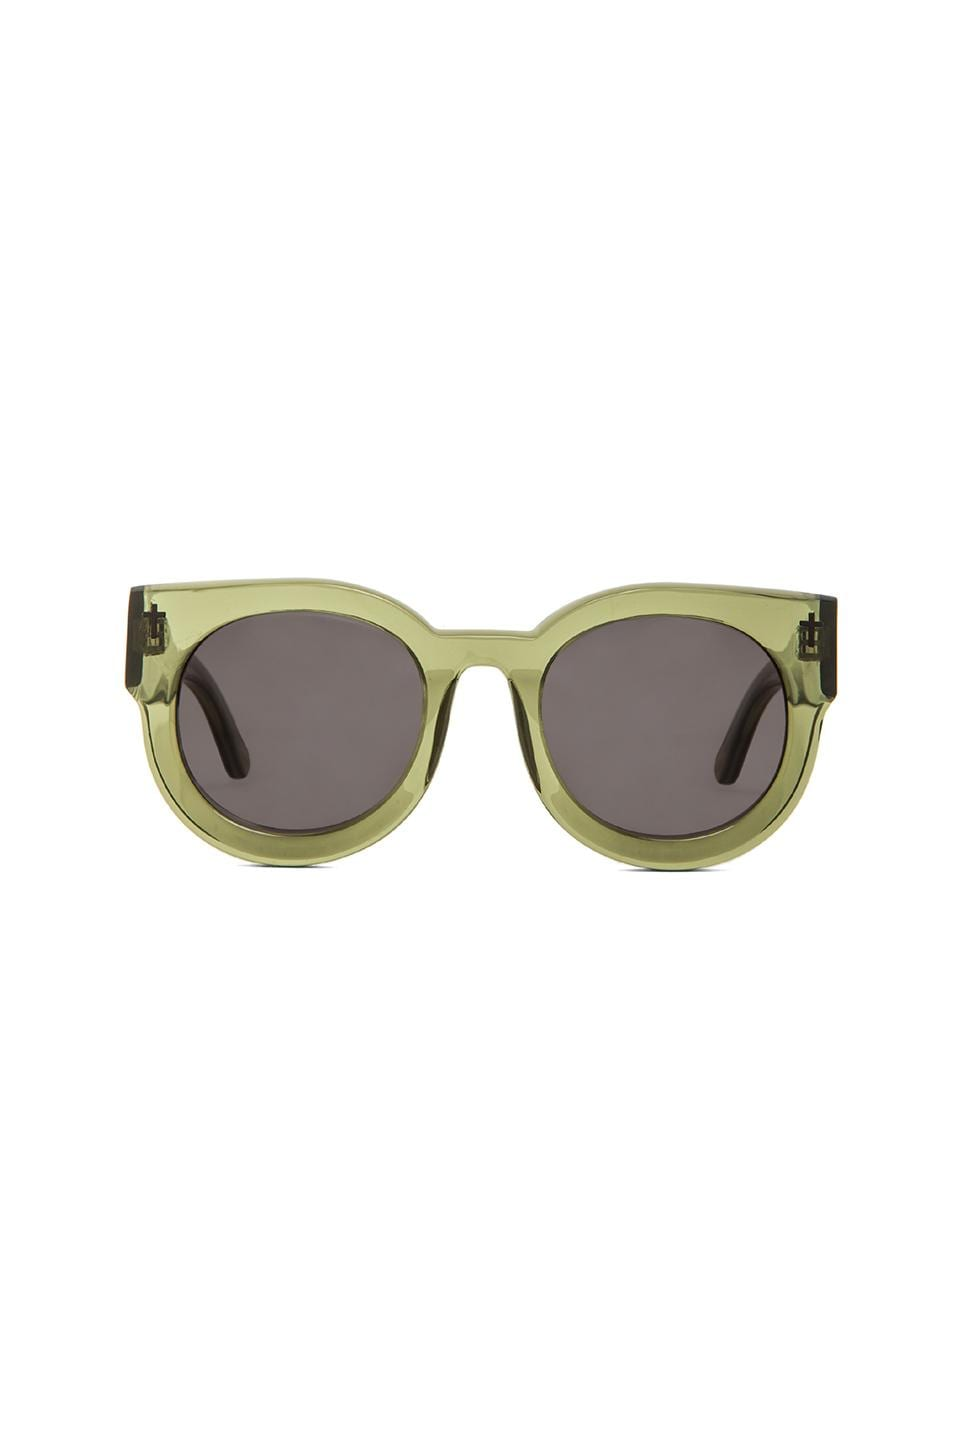 VALLEY EYEWEAR A Dead Coffin Club in Army Green & Black Lens